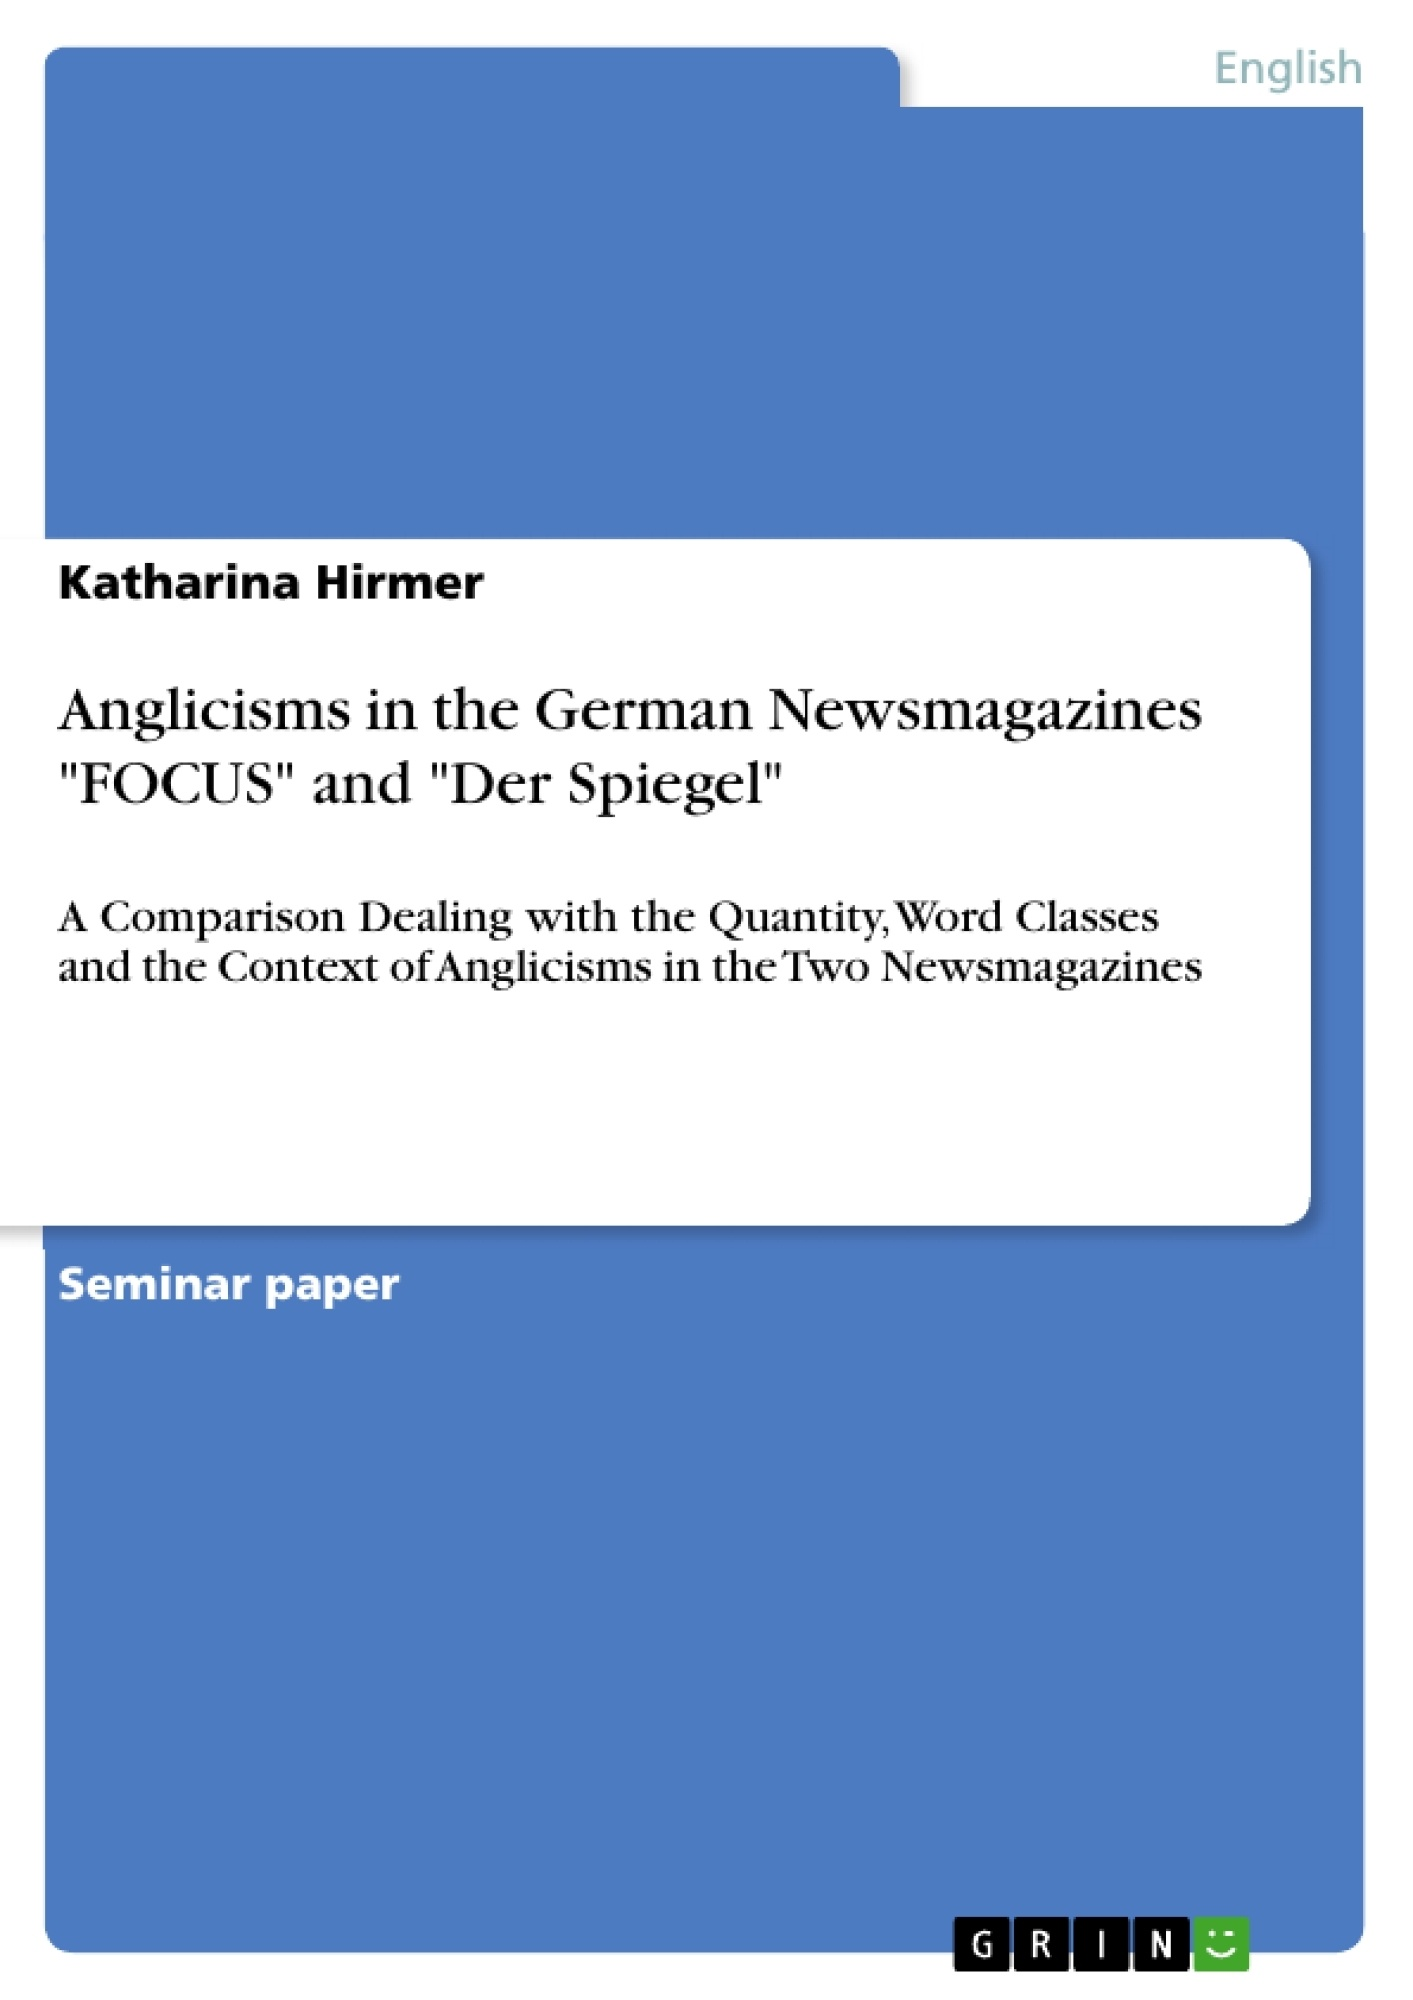 """Title: Anglicisms in the German Newsmagazines """"FOCUS"""" and """"Der Spiegel"""""""